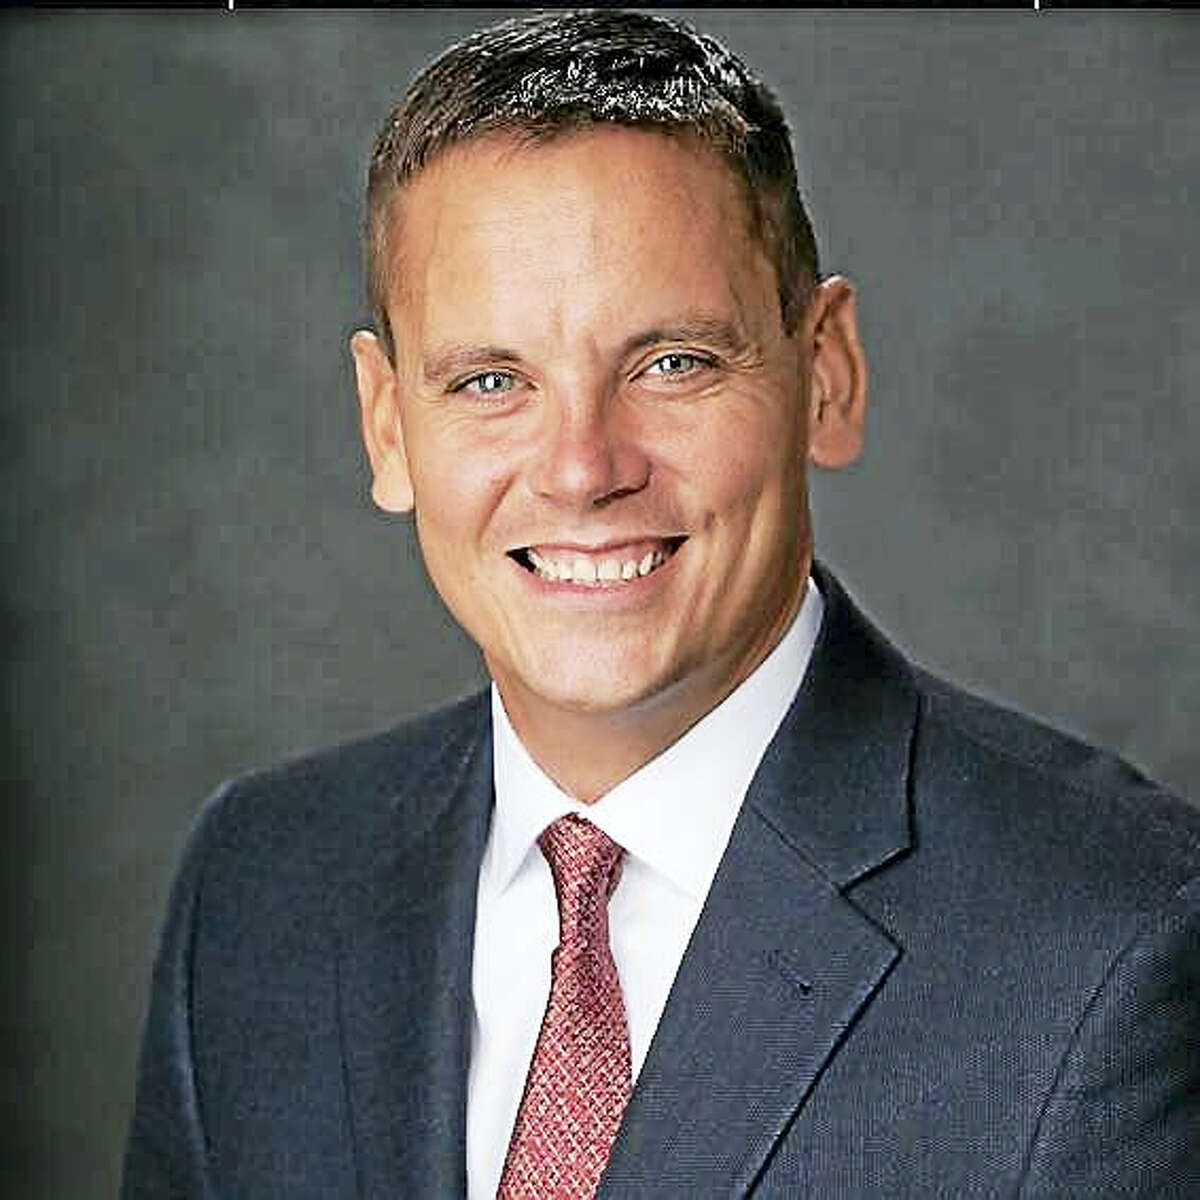 Chris Kelly is the Republican candidate for the 102nd district race for state representative. (Contributed Photo)